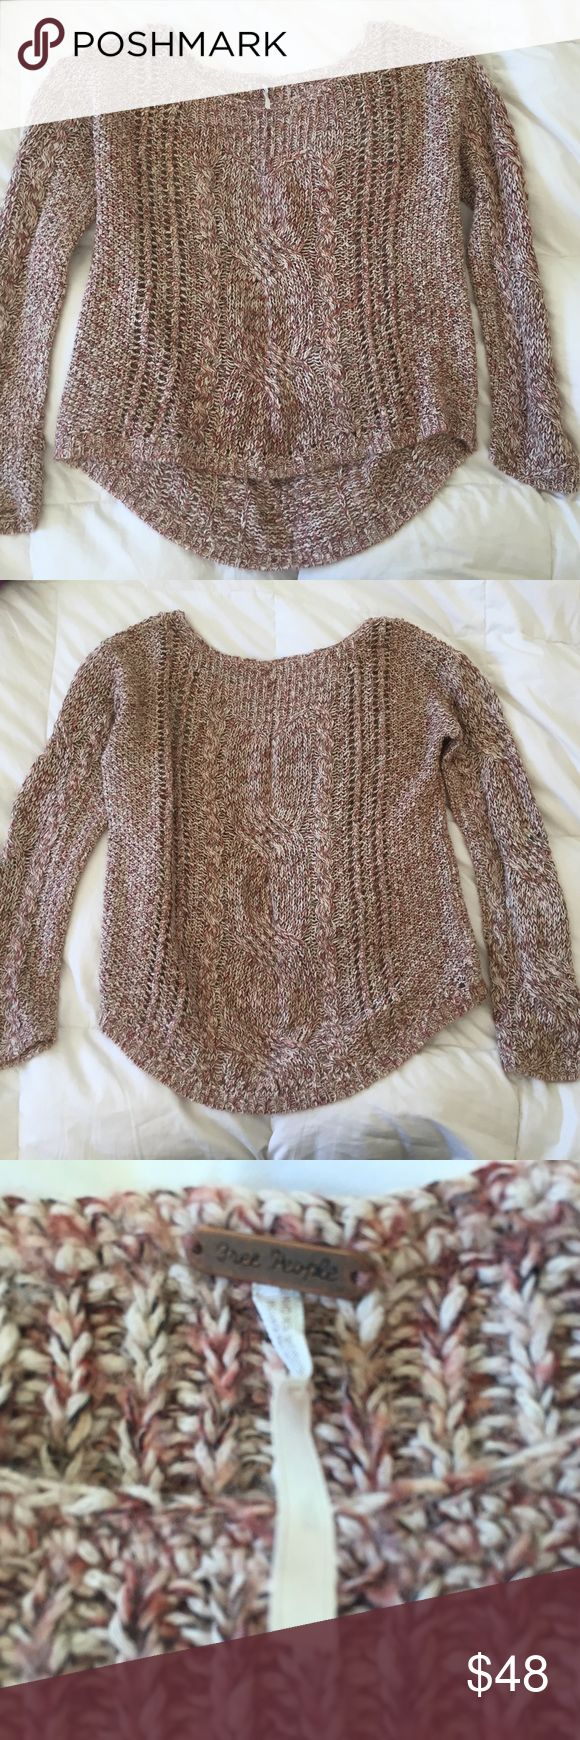 FREE PEOPLE 🍄 relaxed sweater slouchy loose fit Free people woven knit sweater - size large womens ladies sweater pullover with relaxed round scoop neckline , very relaxed comfortable fit , longer cut hem line in the back, nice long sleeves. This sweater is a pretty and neutral palette of tan/brown/cream all interwoven together making a very interesting piece in color and in texture. Very cute to pair with jean shorts in the spring and you are ready for the day! Free People Sweaters Crew…